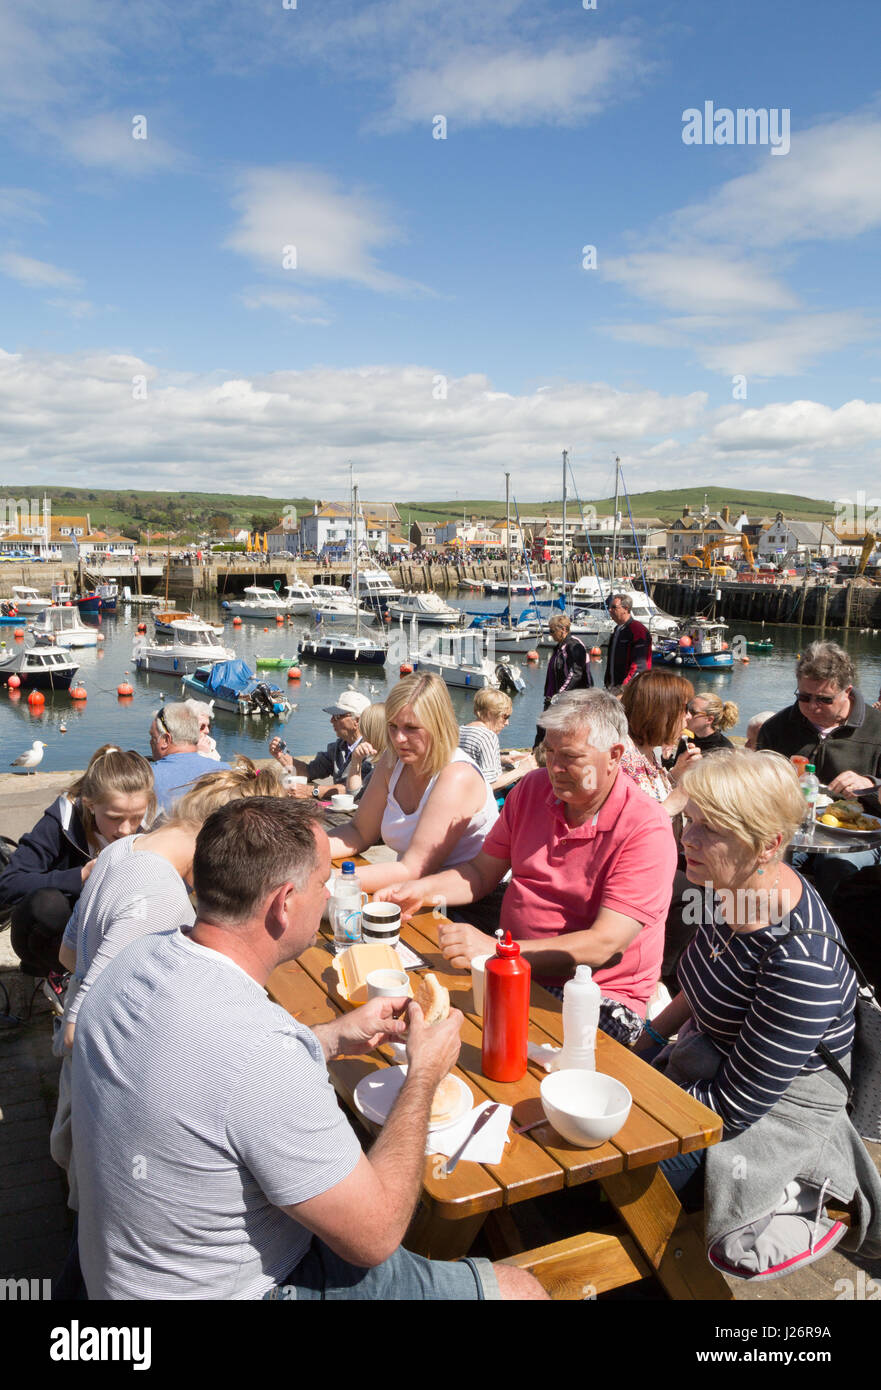 West Bay Dorset - english tourists eating outdoors at a cafe - concept - Staycation; West Bay, Dorset UK - Stock Image